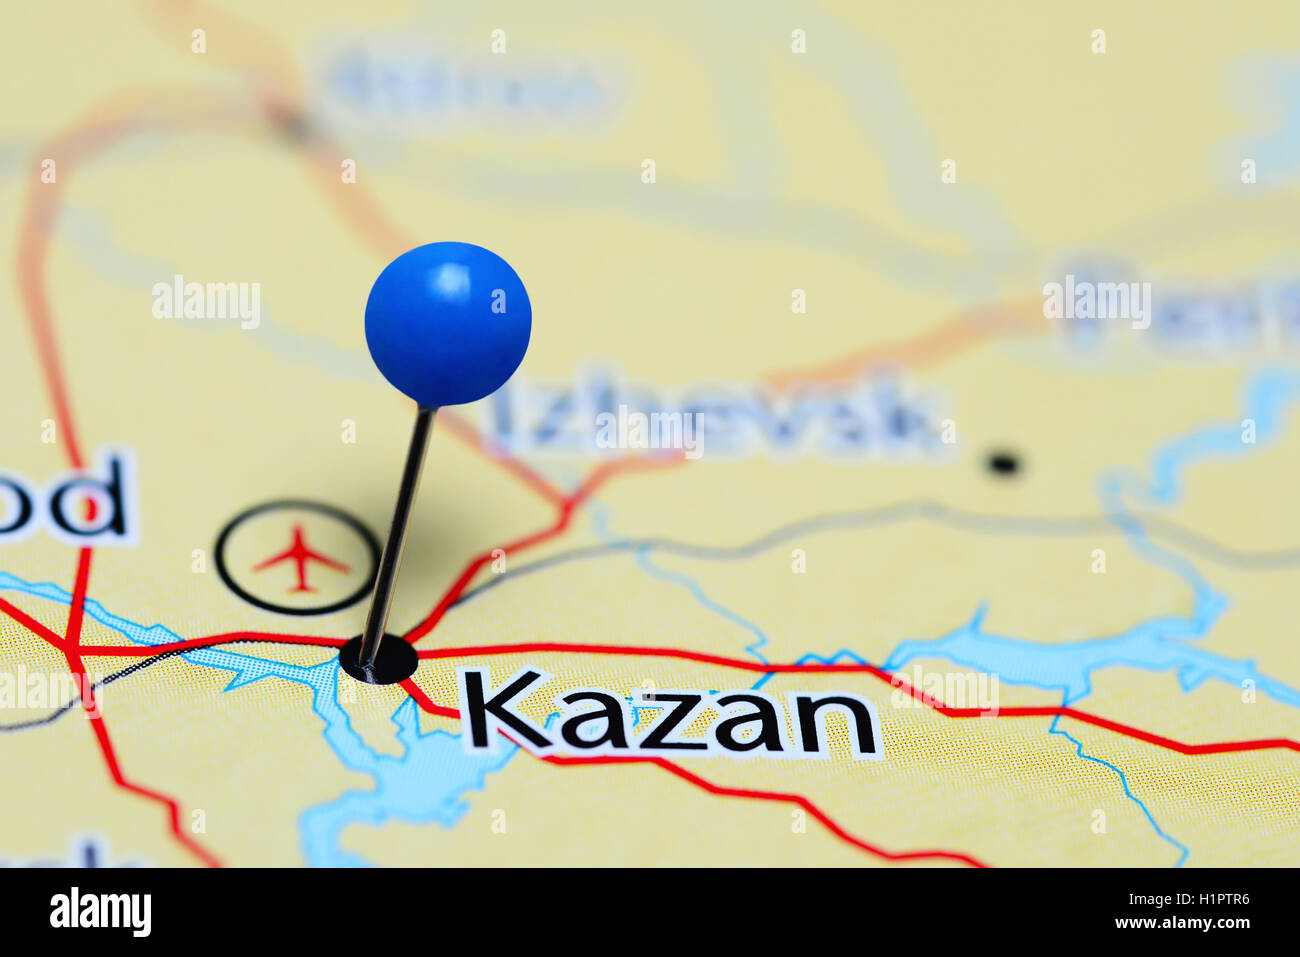 Kazan pinned on a map of Russia Stock Photo Royalty Free Image